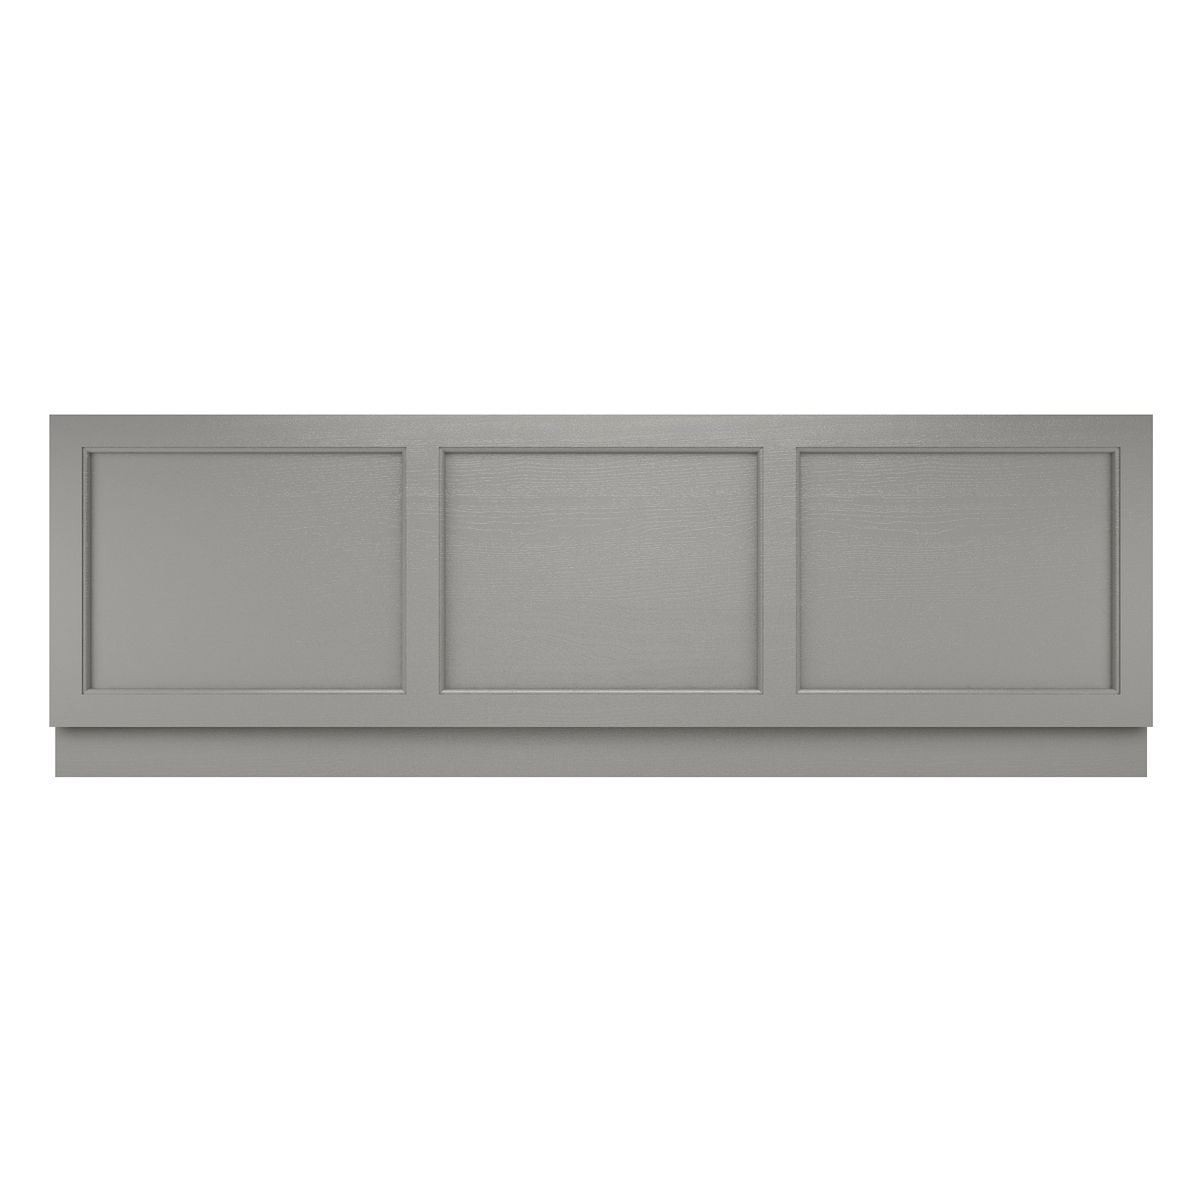 Old London Storm Grey Front Bath Panel 1700mm